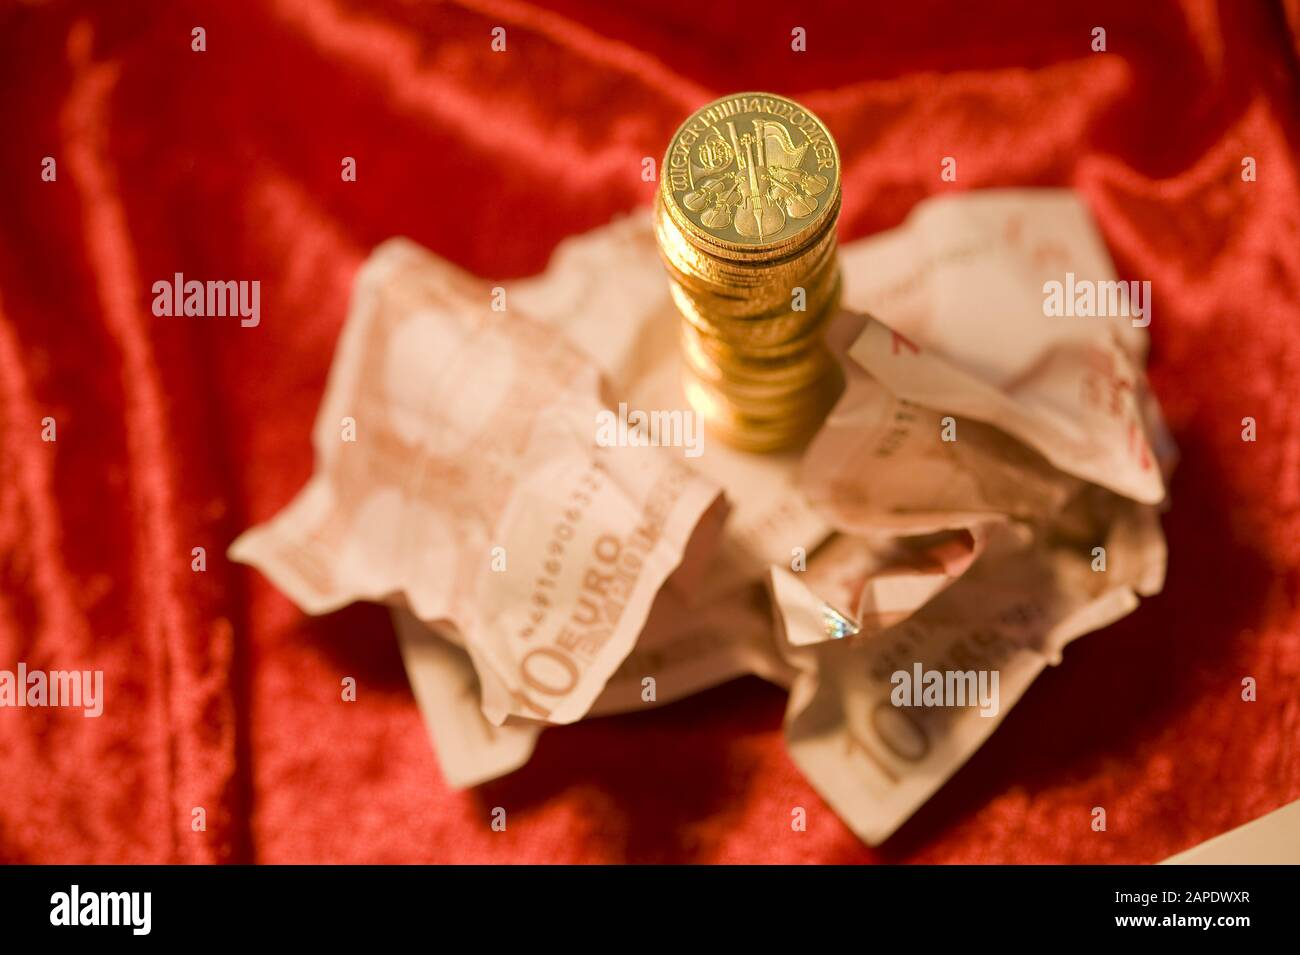 Gold und Papiergeld - Gold Coins and Euro Banknotes Stock Photo